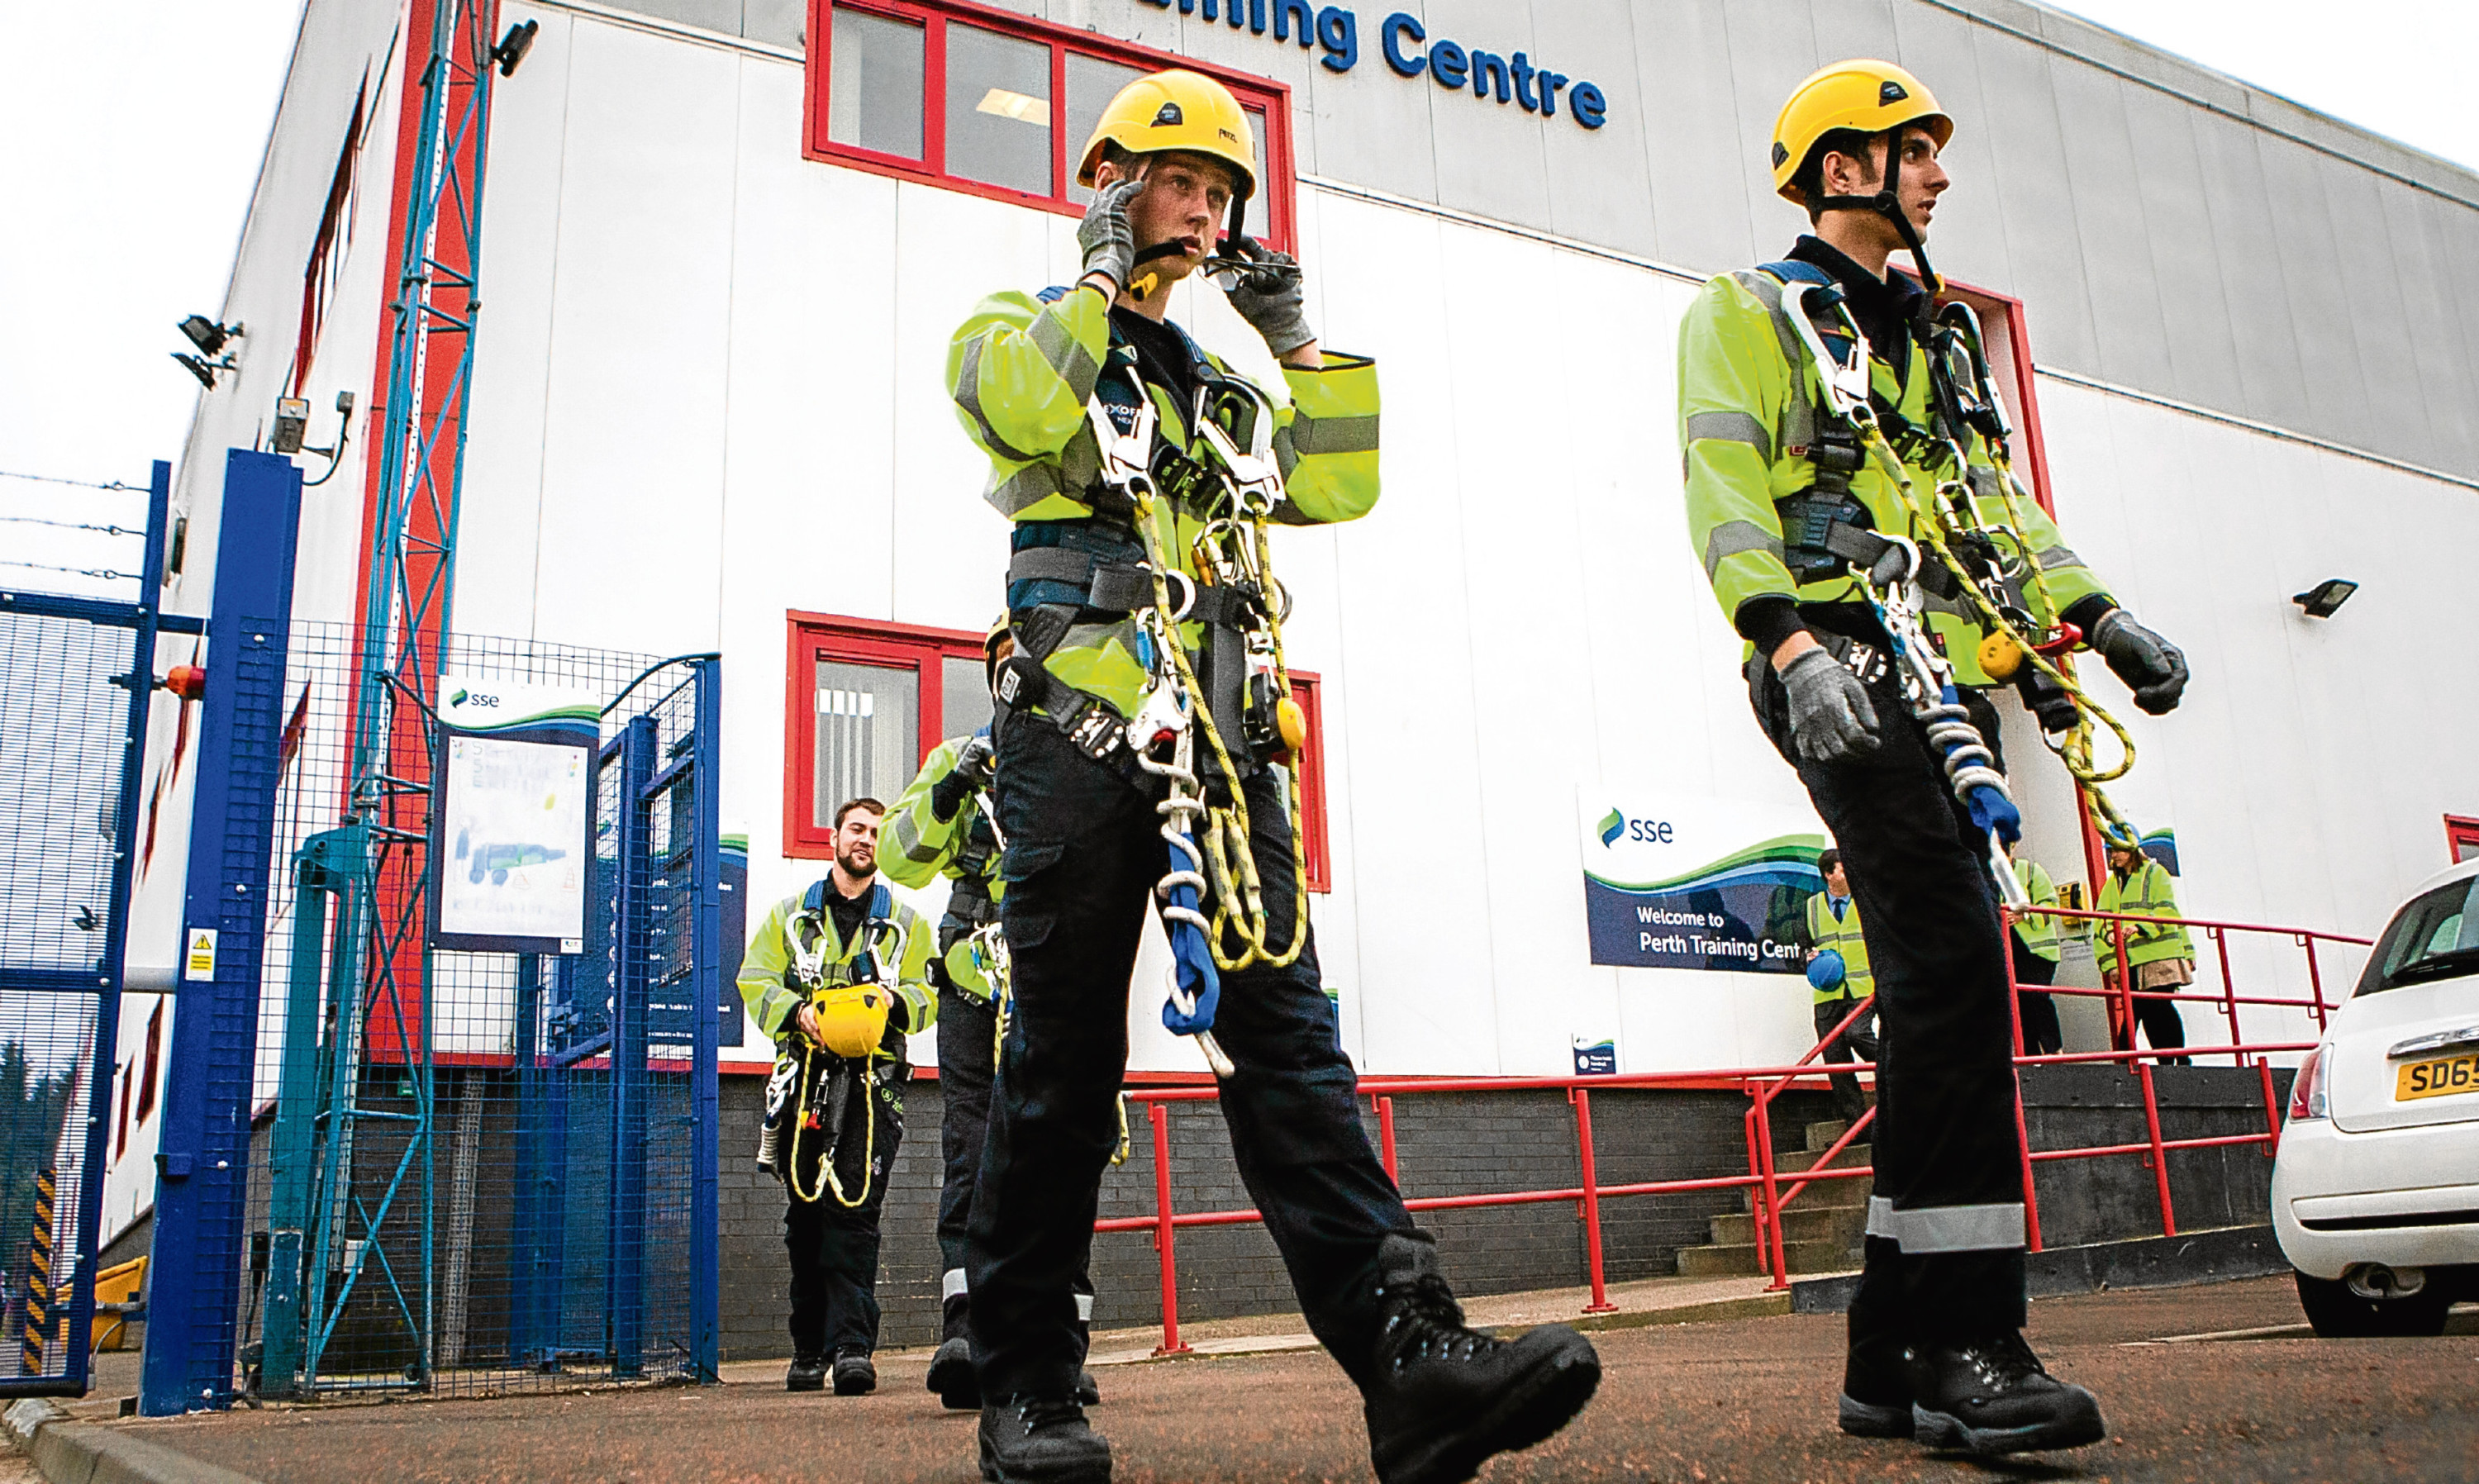 SSE trainees in their high visibility safety wear and climbing gear.